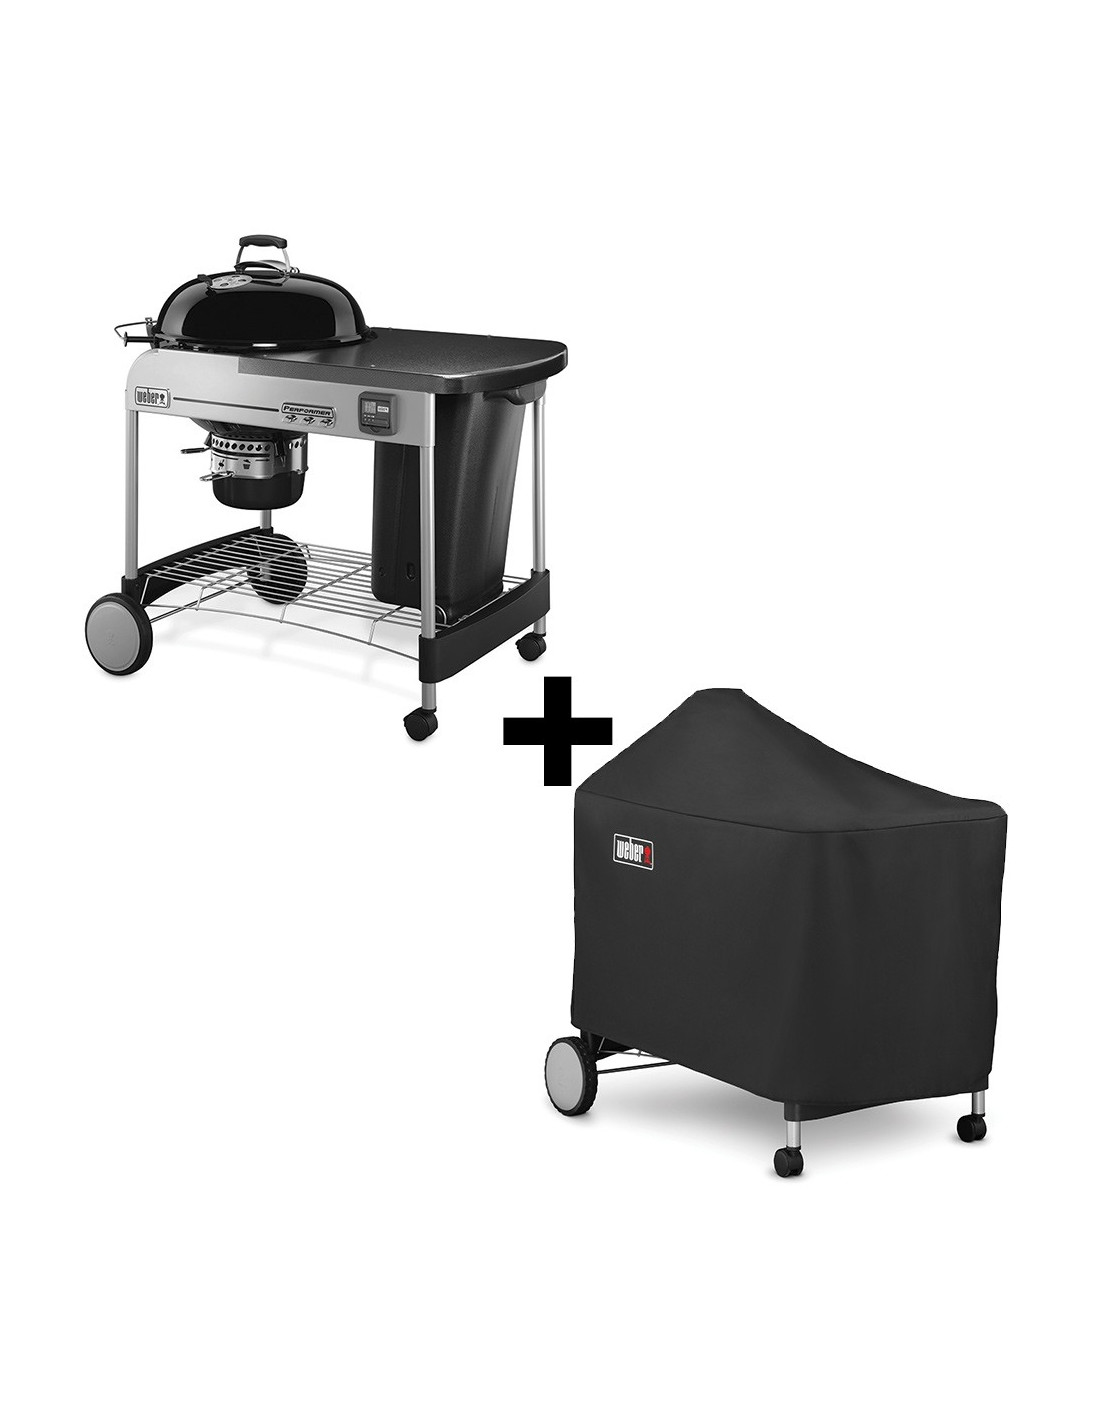 barbecue weber performer premium 57 cm barbecue charbon weber performer premium gbs 57 cm. Black Bedroom Furniture Sets. Home Design Ideas